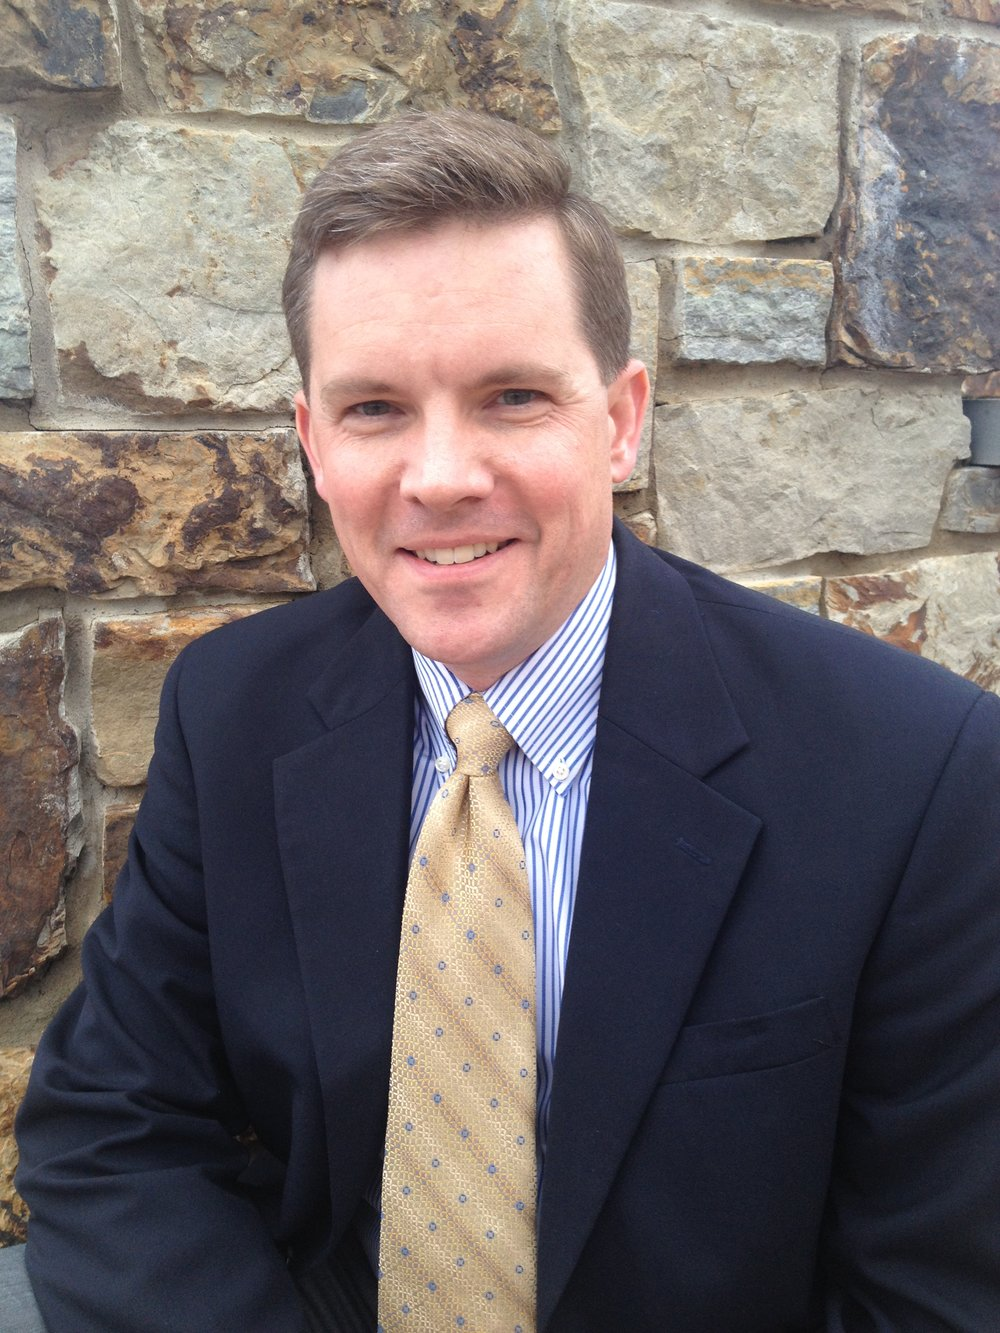 Matthew J. Smyth, President & Chief Strategist